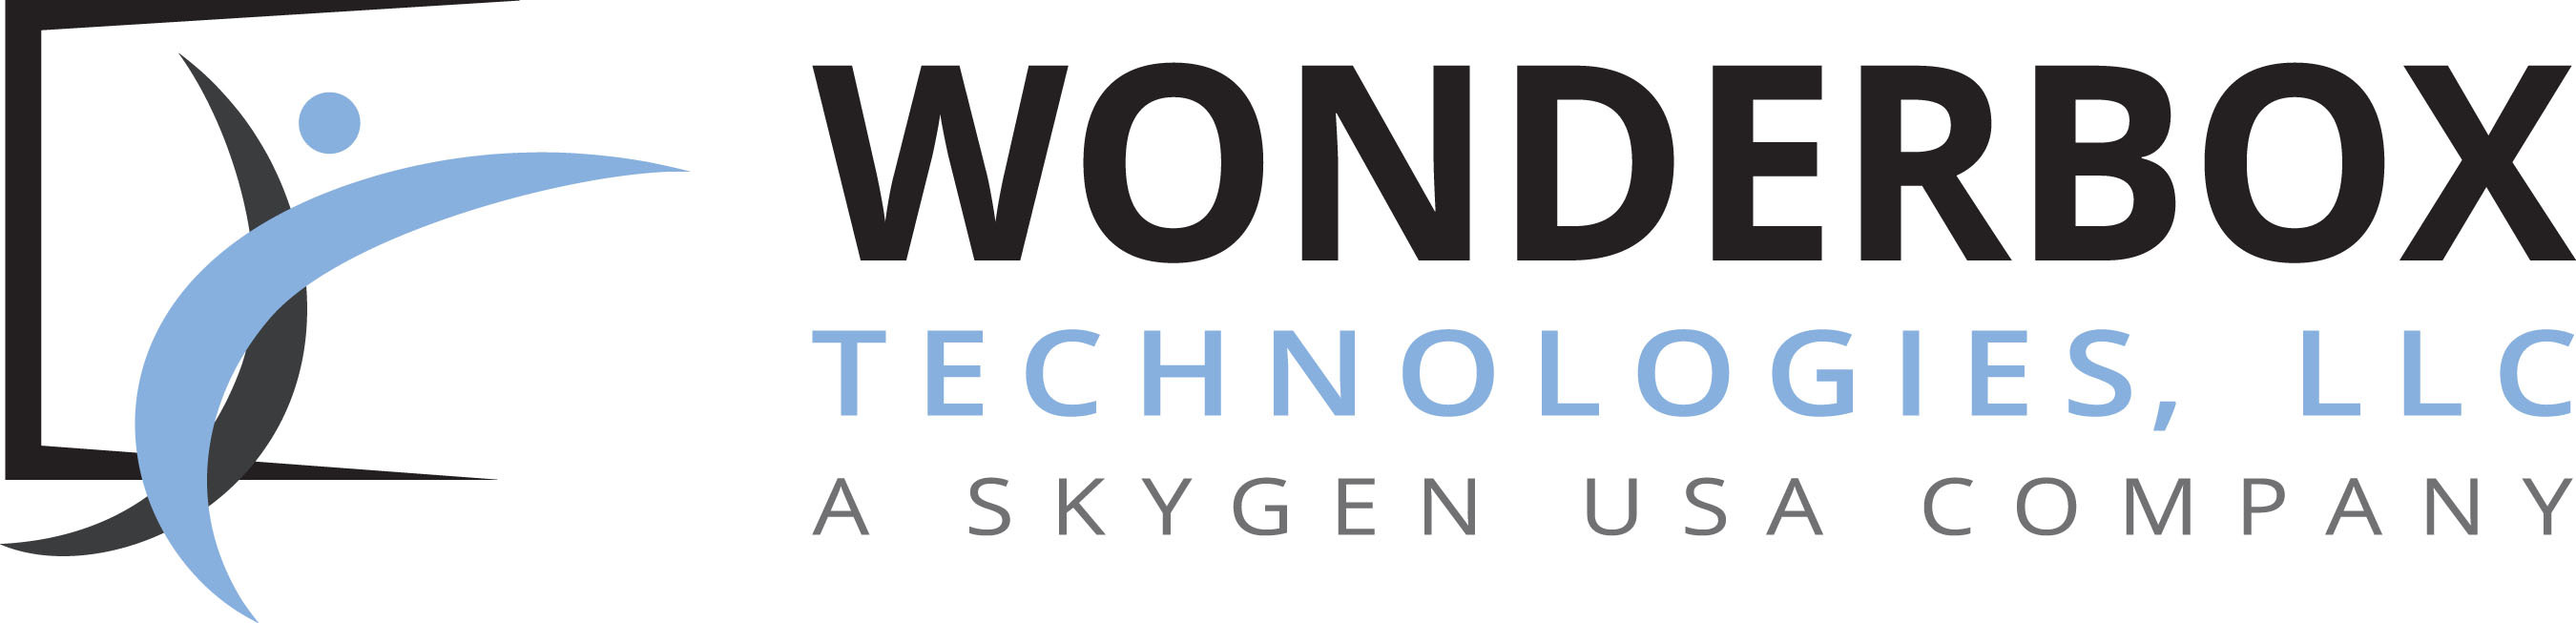 Wonderbox Technologies, part of the SKYGEN USA family of companies, is a distinguished, agile software company focused on building next-generation technology for the specialty payer market. This technology enables healthcare payers to remain at the forefront of benefit management by using one of the world's most innovative and flexible technology platforms to dramatically improve automation, achieve compliance and reduce the cost of delivering healthcare benefits.